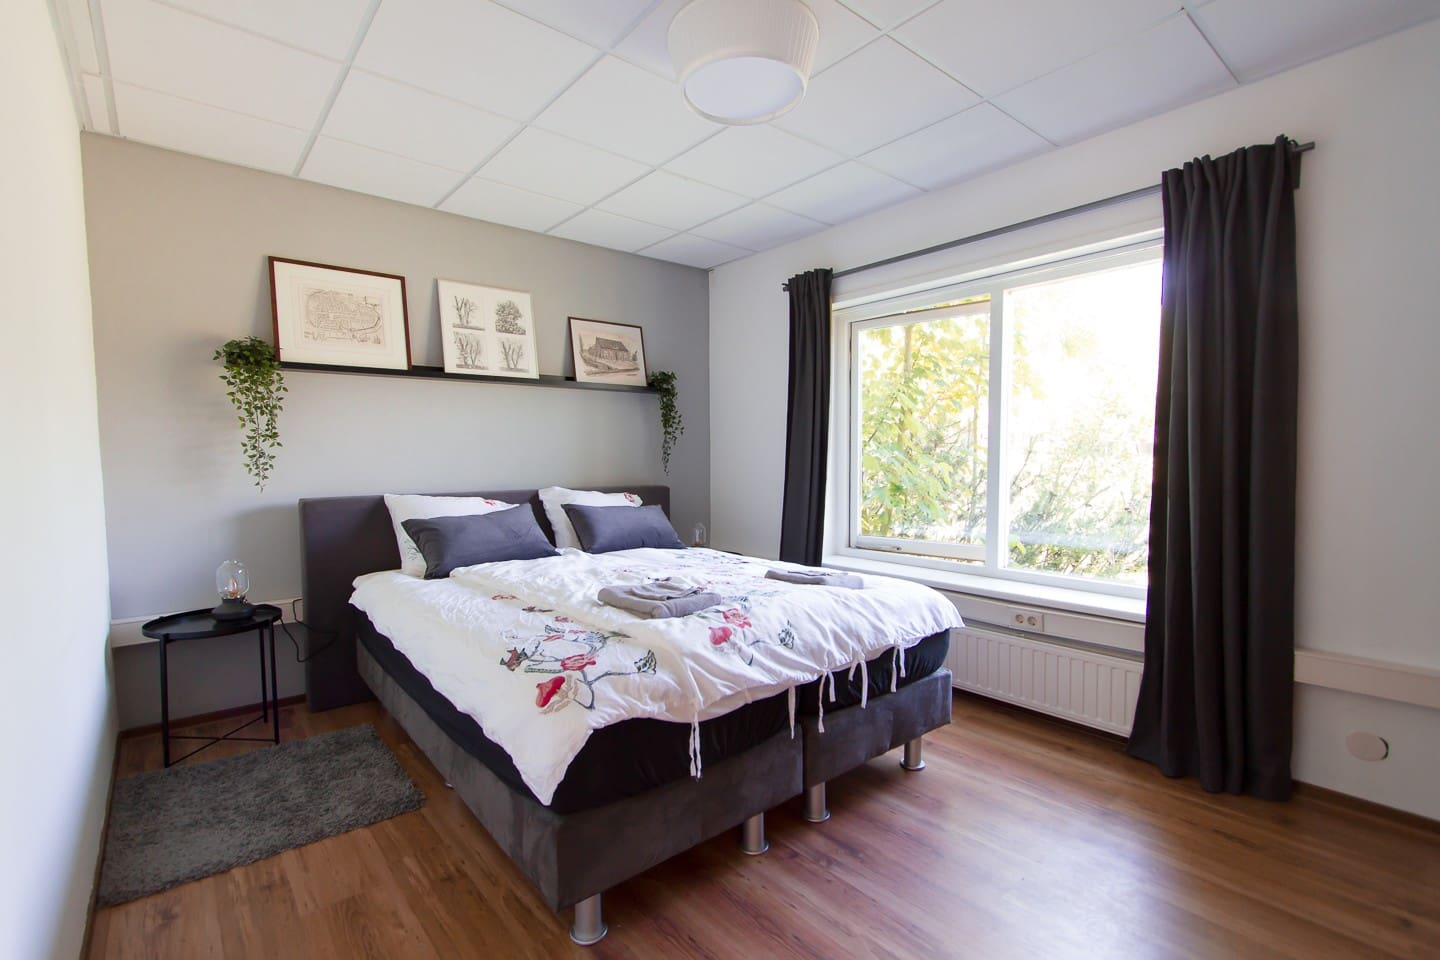 Master bedroom with a boxspring double bed. The bedroom looks out over a meadow for a splendid morning view.